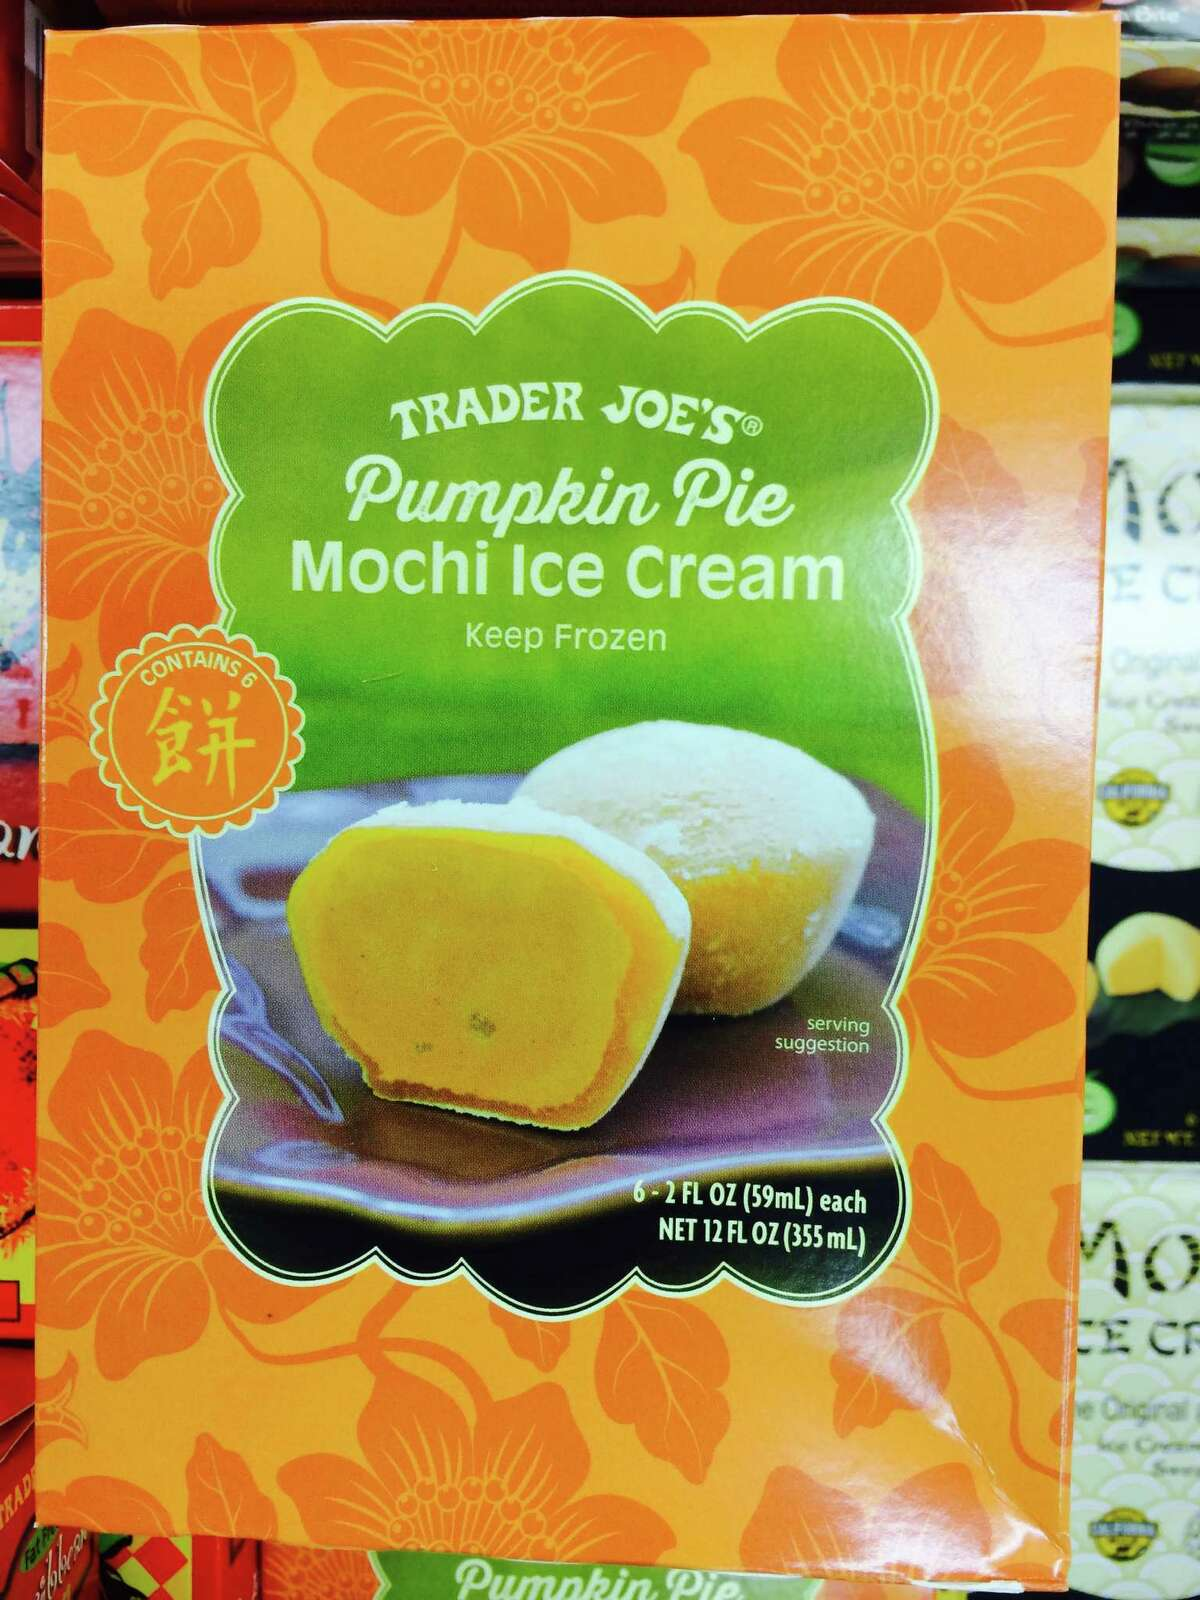 1) Trader Joe's Pumpkin Pie Mochi Ice Cream:Has out-of-the-gourd thinking gone to a ridiculous extreme with this frozen treat? Yes! But surprisingly, it's also one of the best pumpkin items, according to SFGate editorial staff members who devoured a box at meeting. 'Wow?! Really?! This is good!' some were saying.